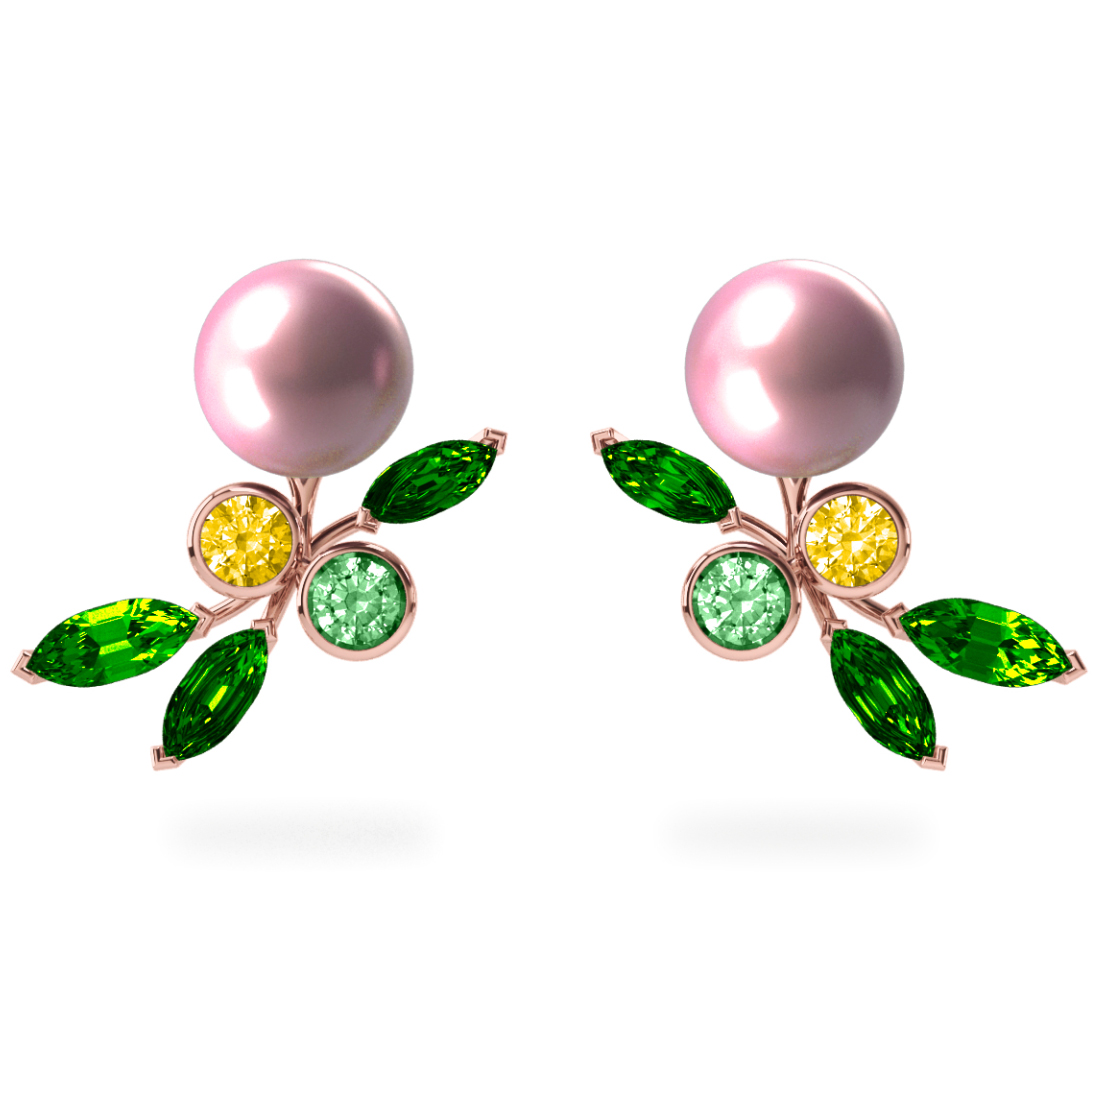 Boucles d'oreilles My Angel Rose - Saphirs, diamants, tsavorites & perles d'eau douce<br /> Or rose 18 carats